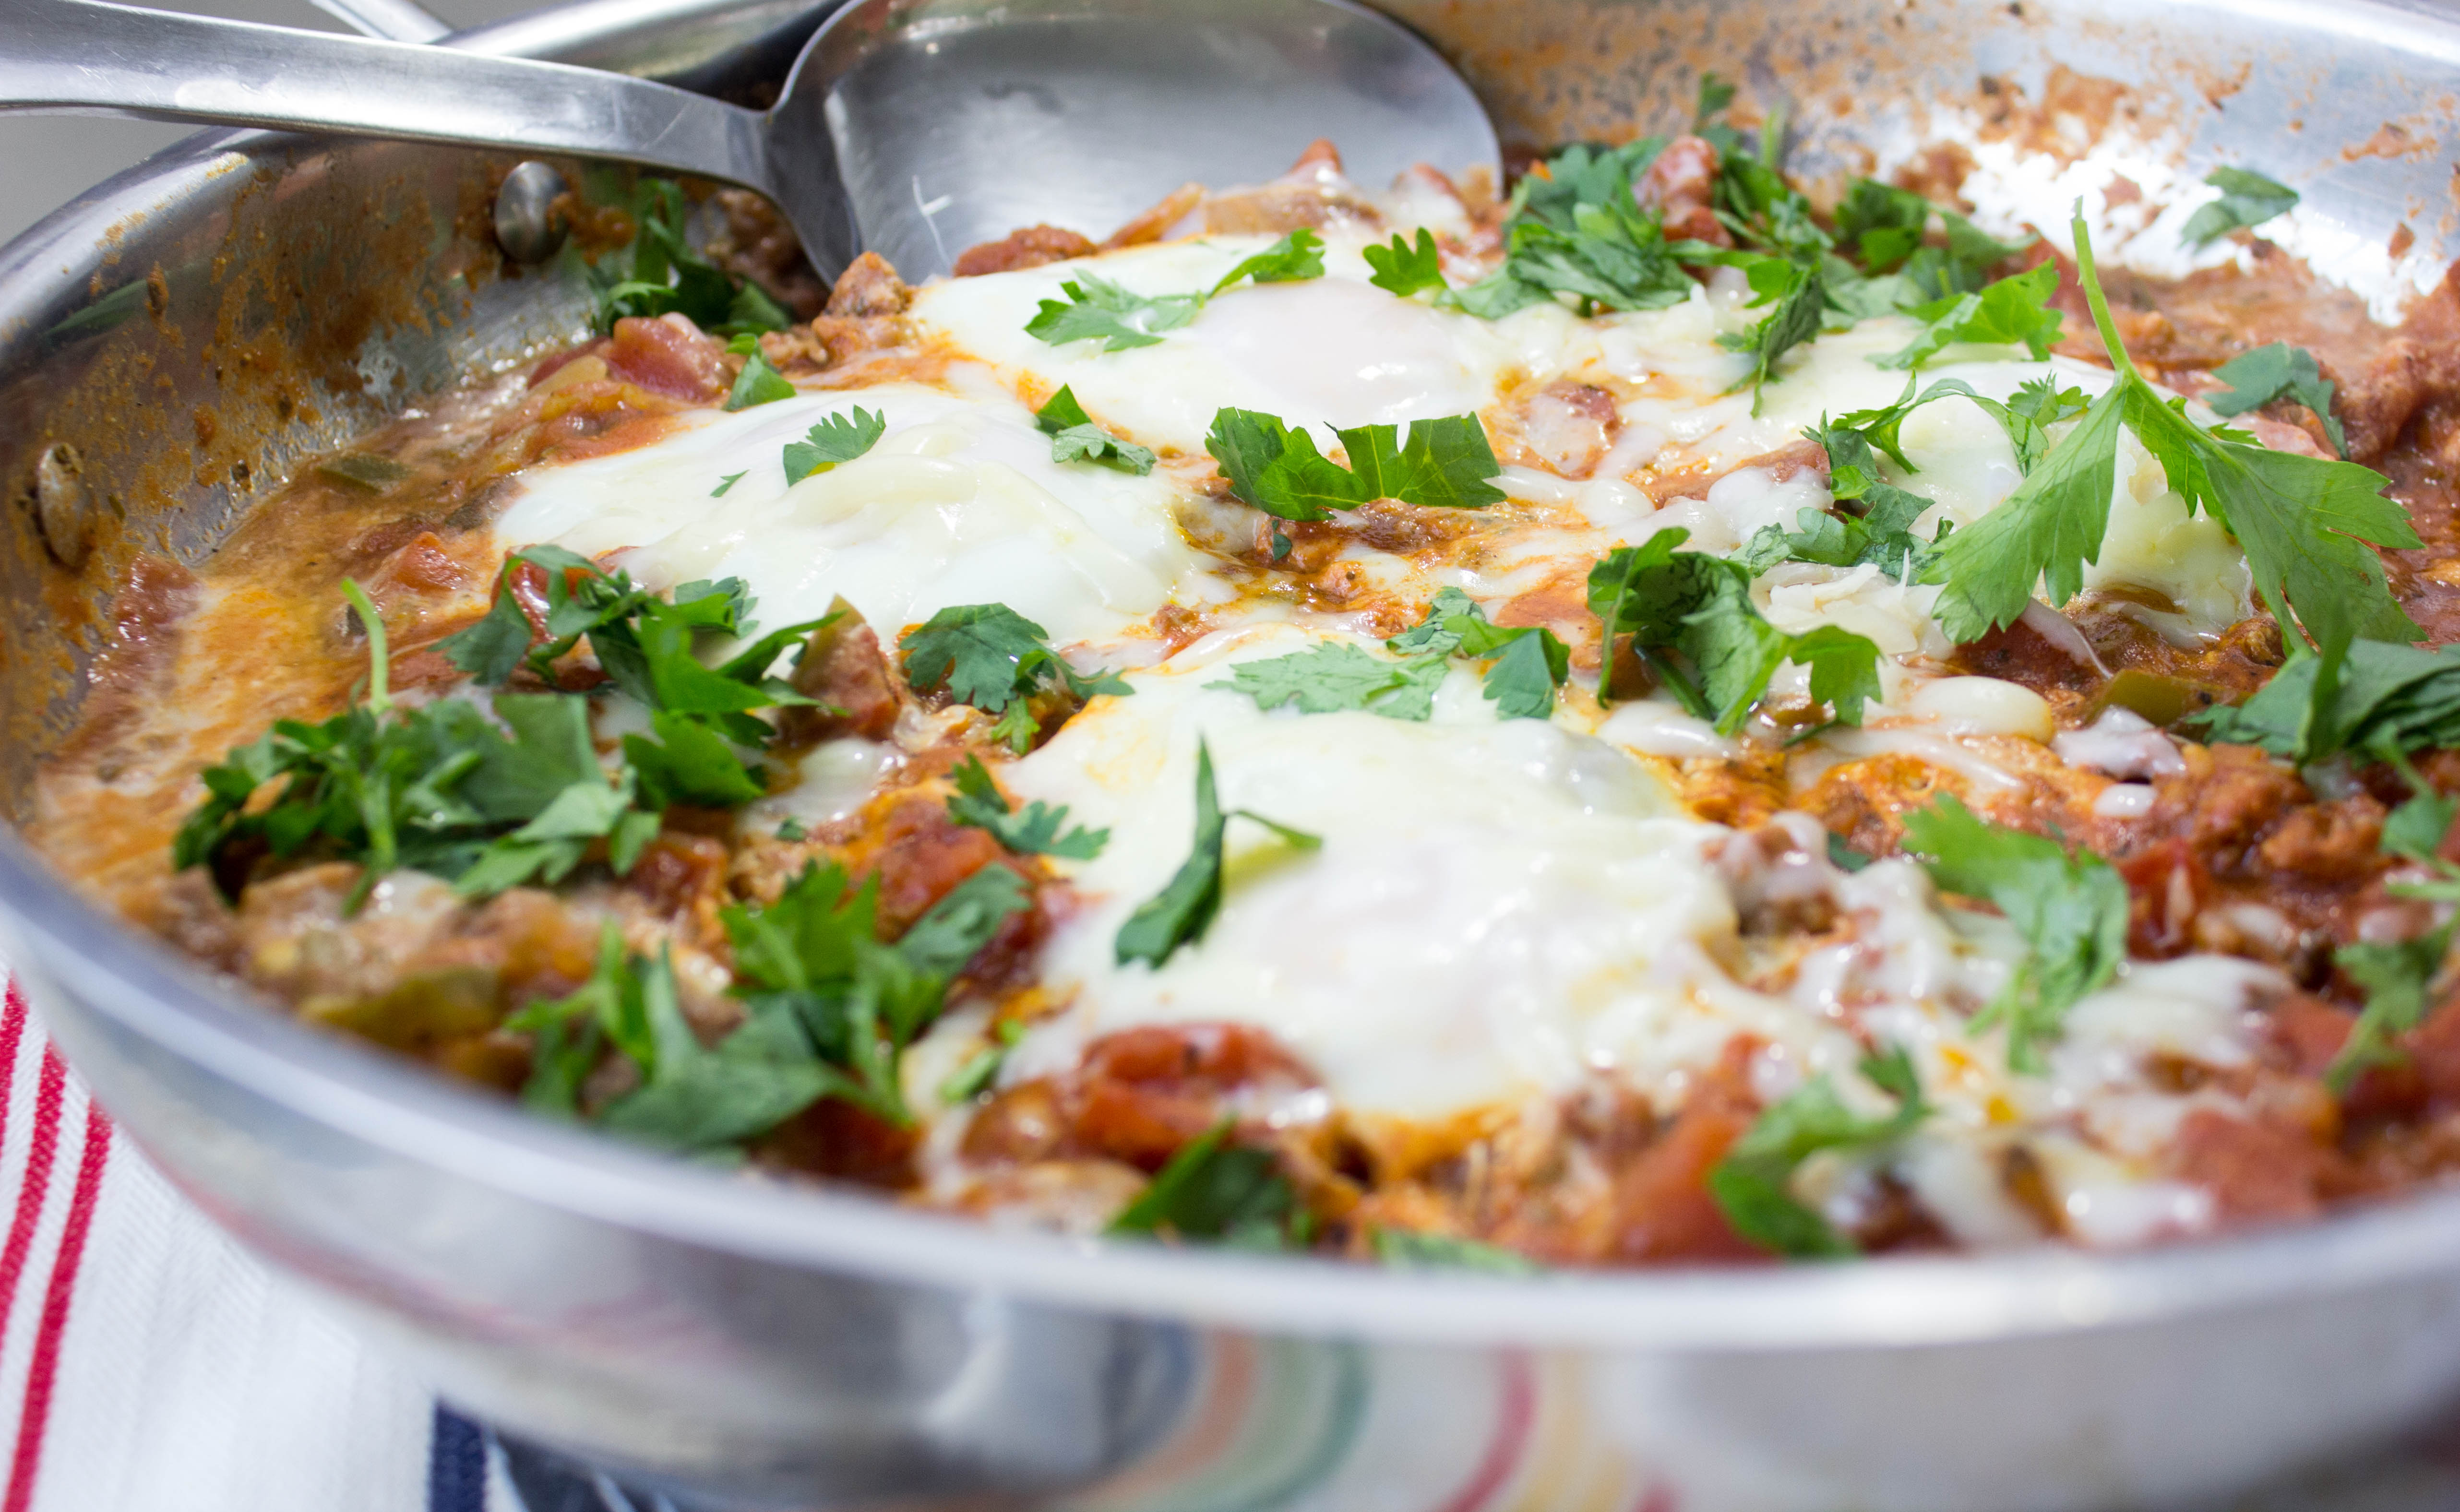 Poached Eggs in Spicy Mexican-Style Tomato Sauce